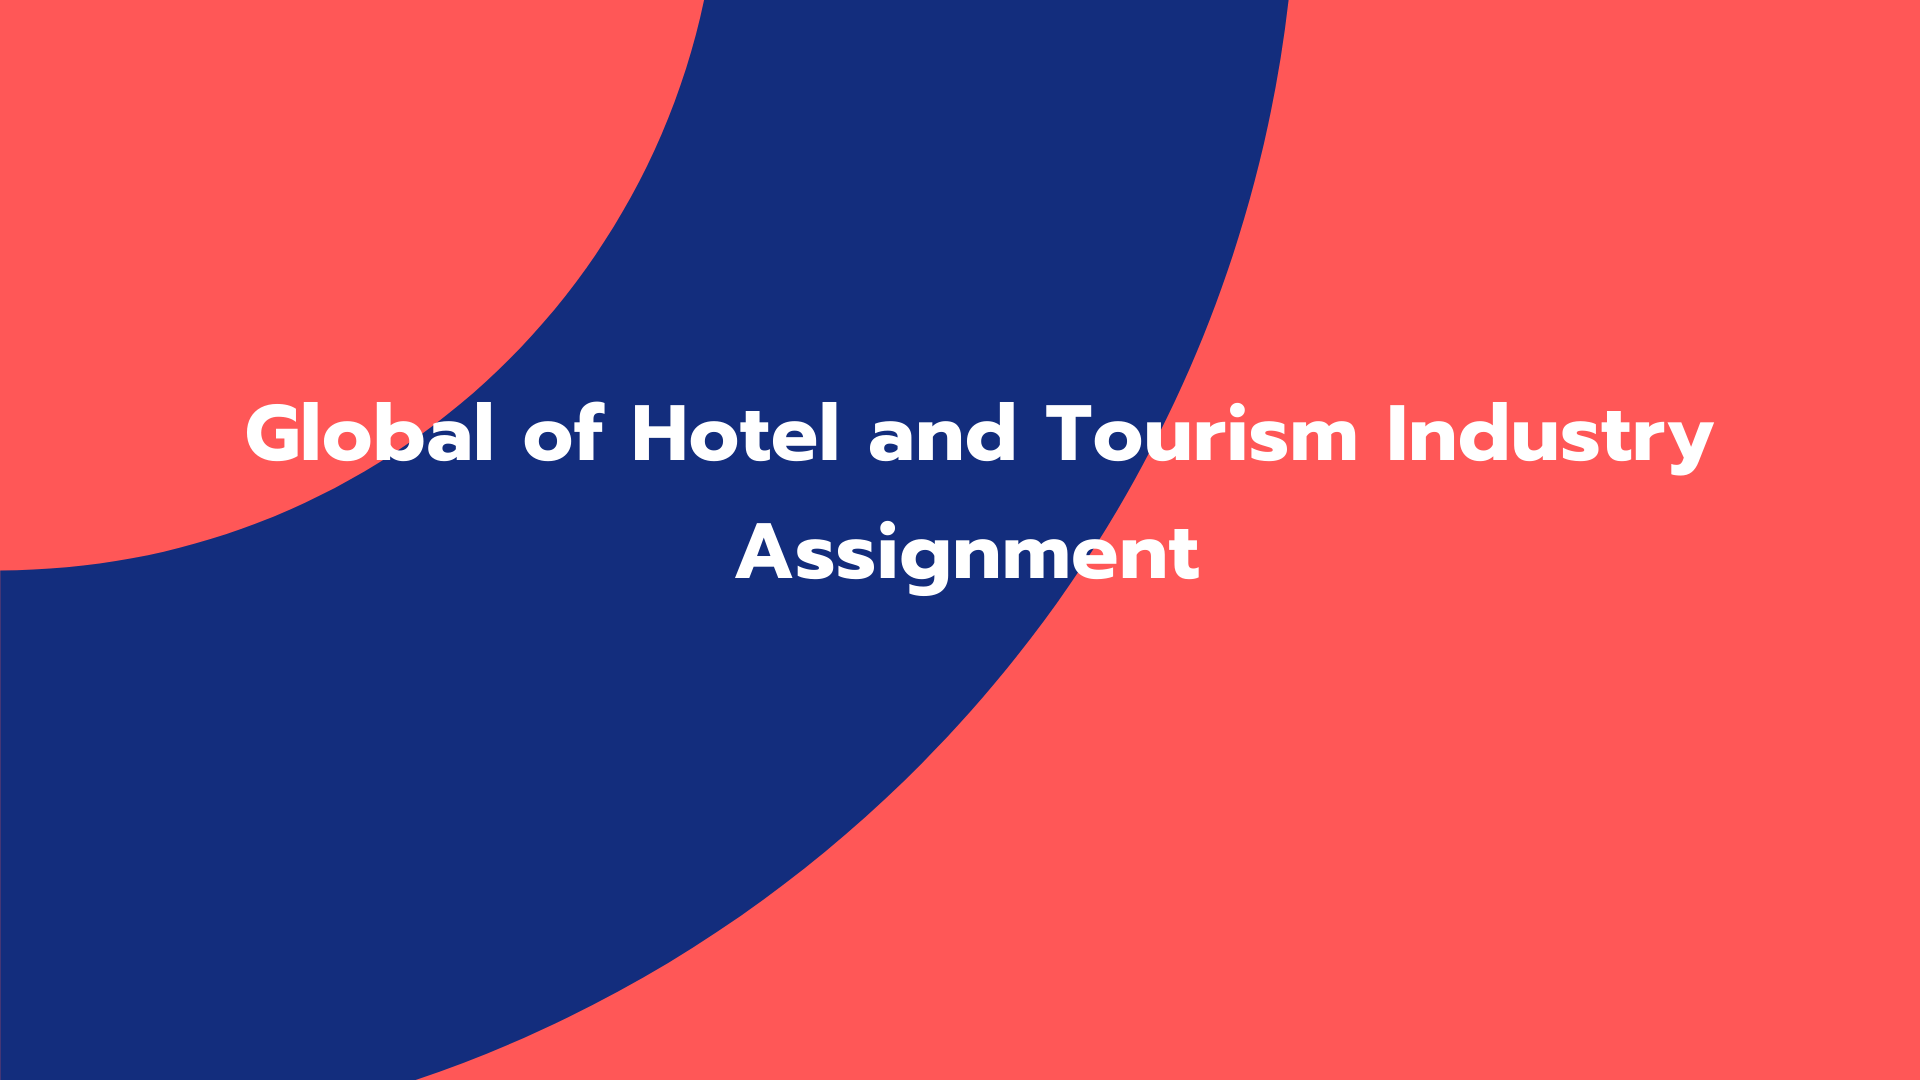 Global of Hotel and Tourism Industry Assignment